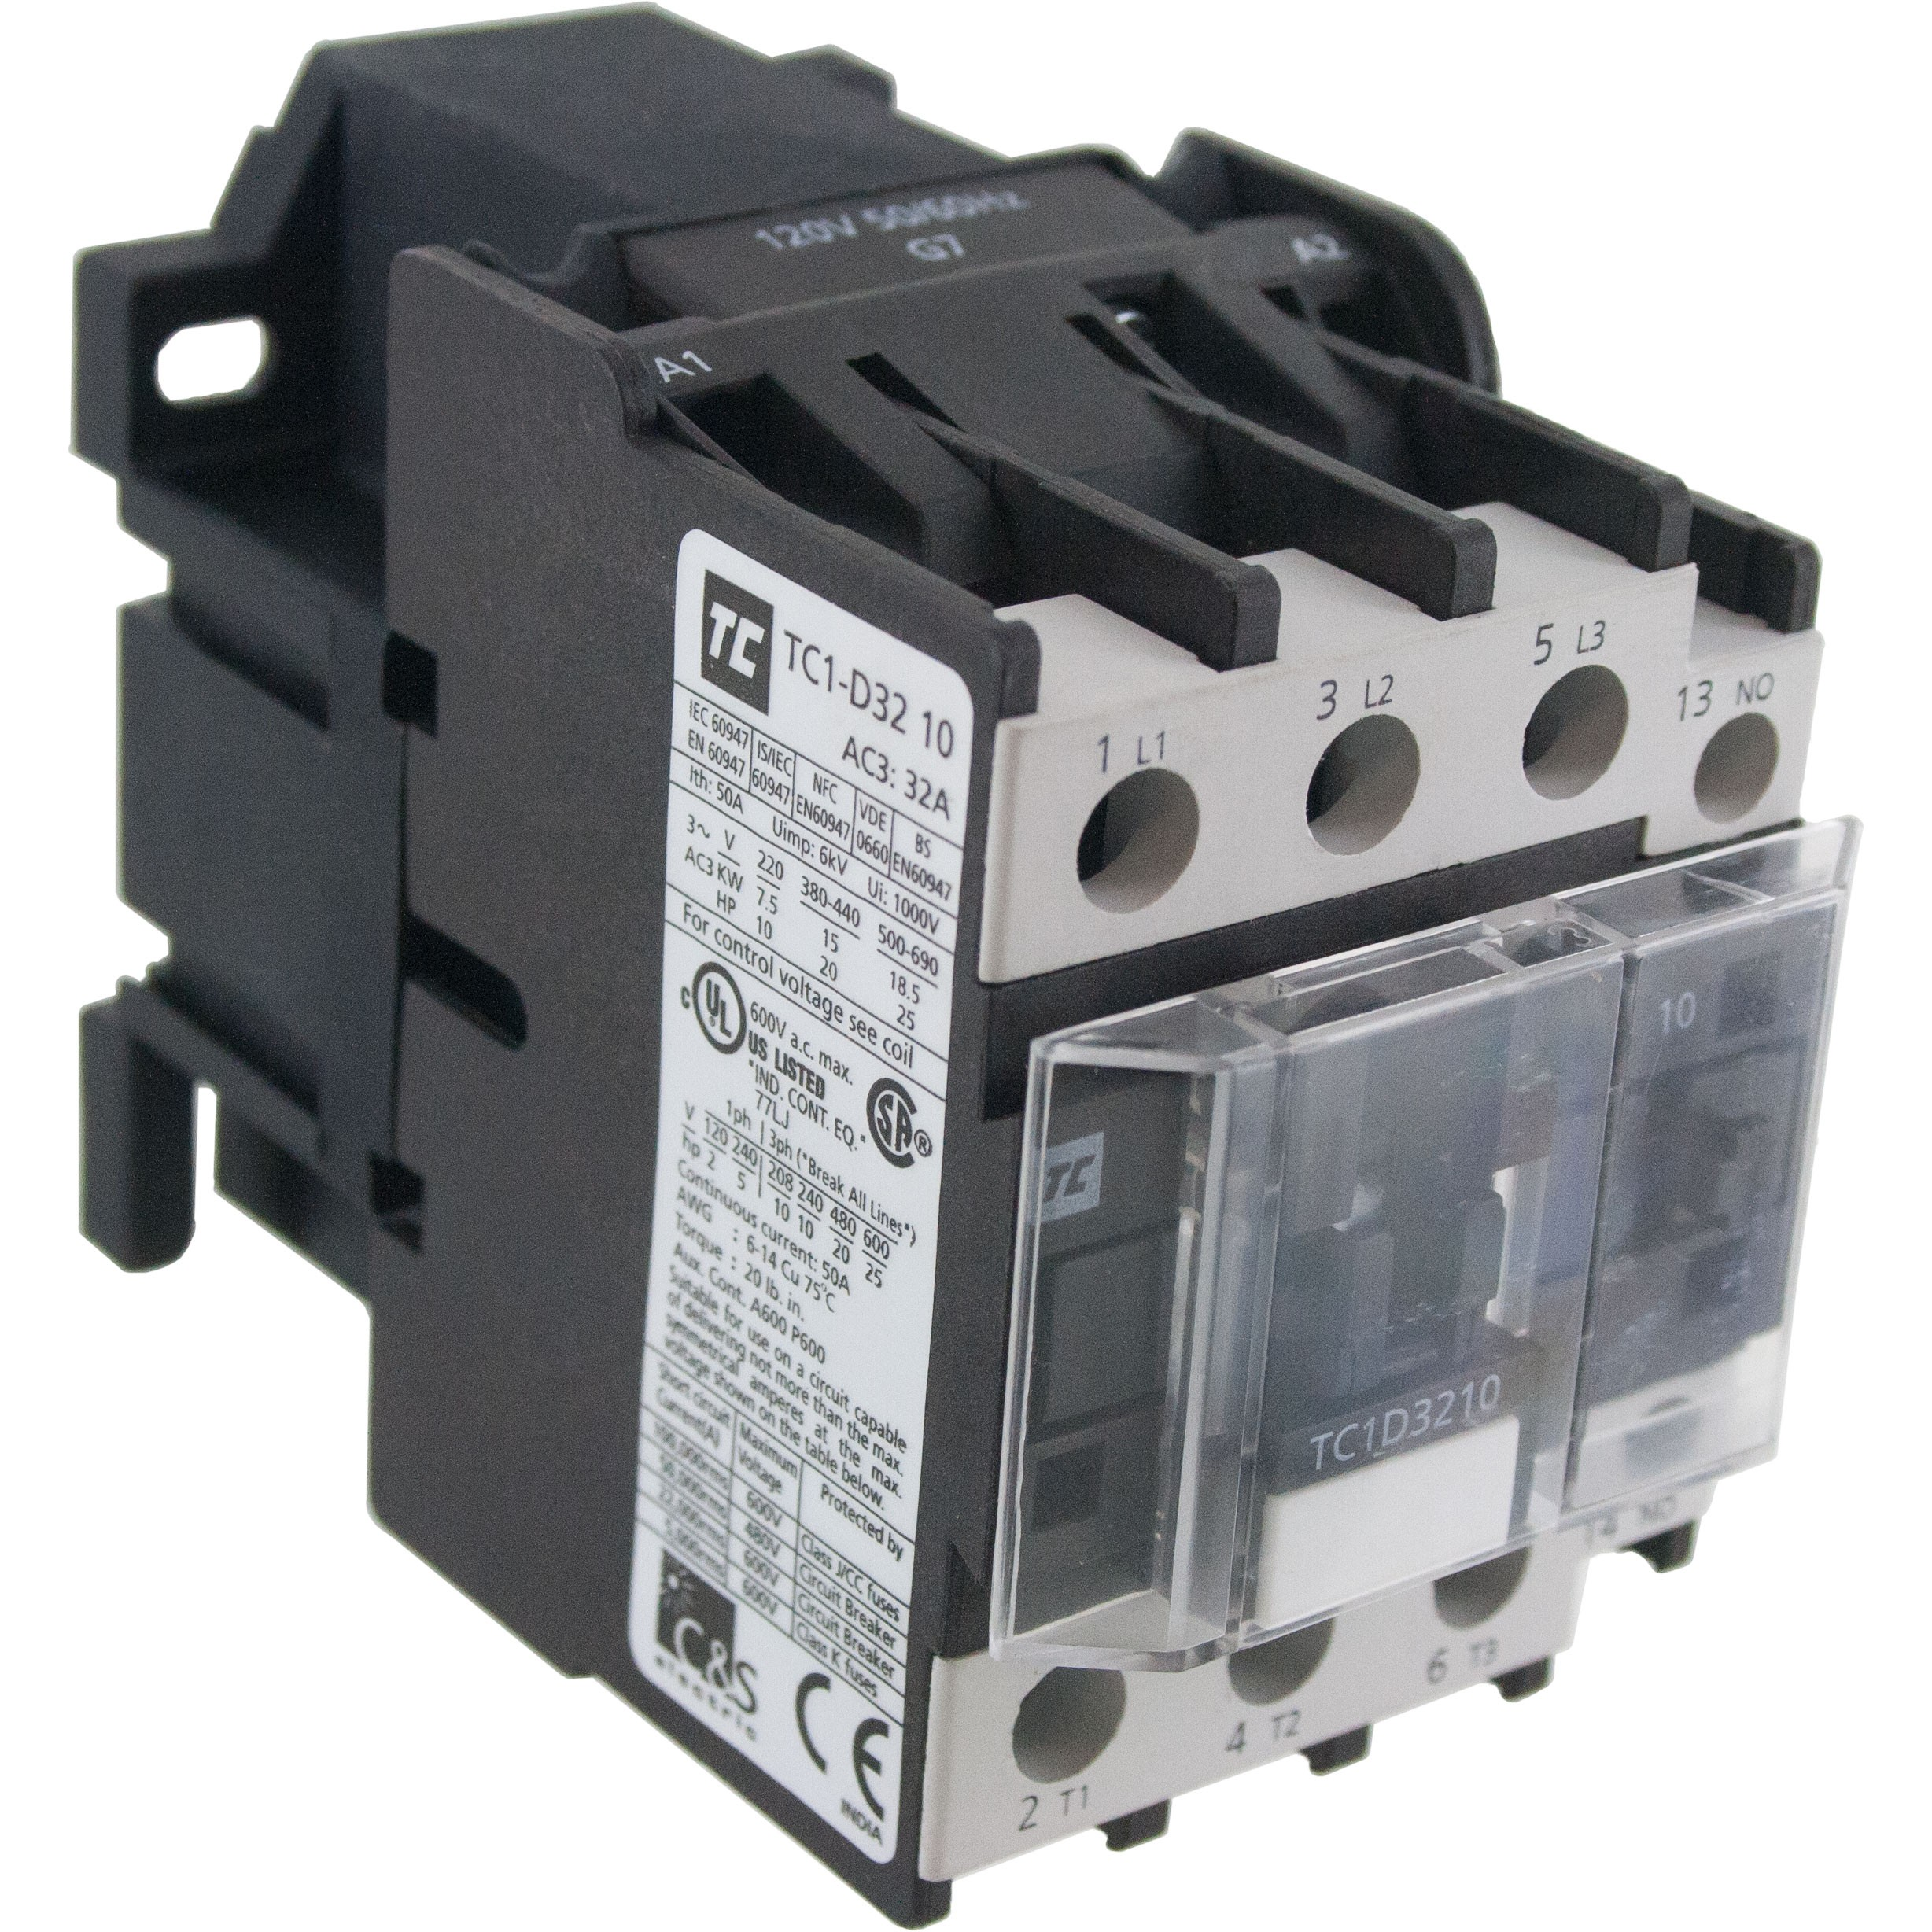 3 Pole Contactor 32 Amp 1 N/O 120 Volt AC Coil Angle